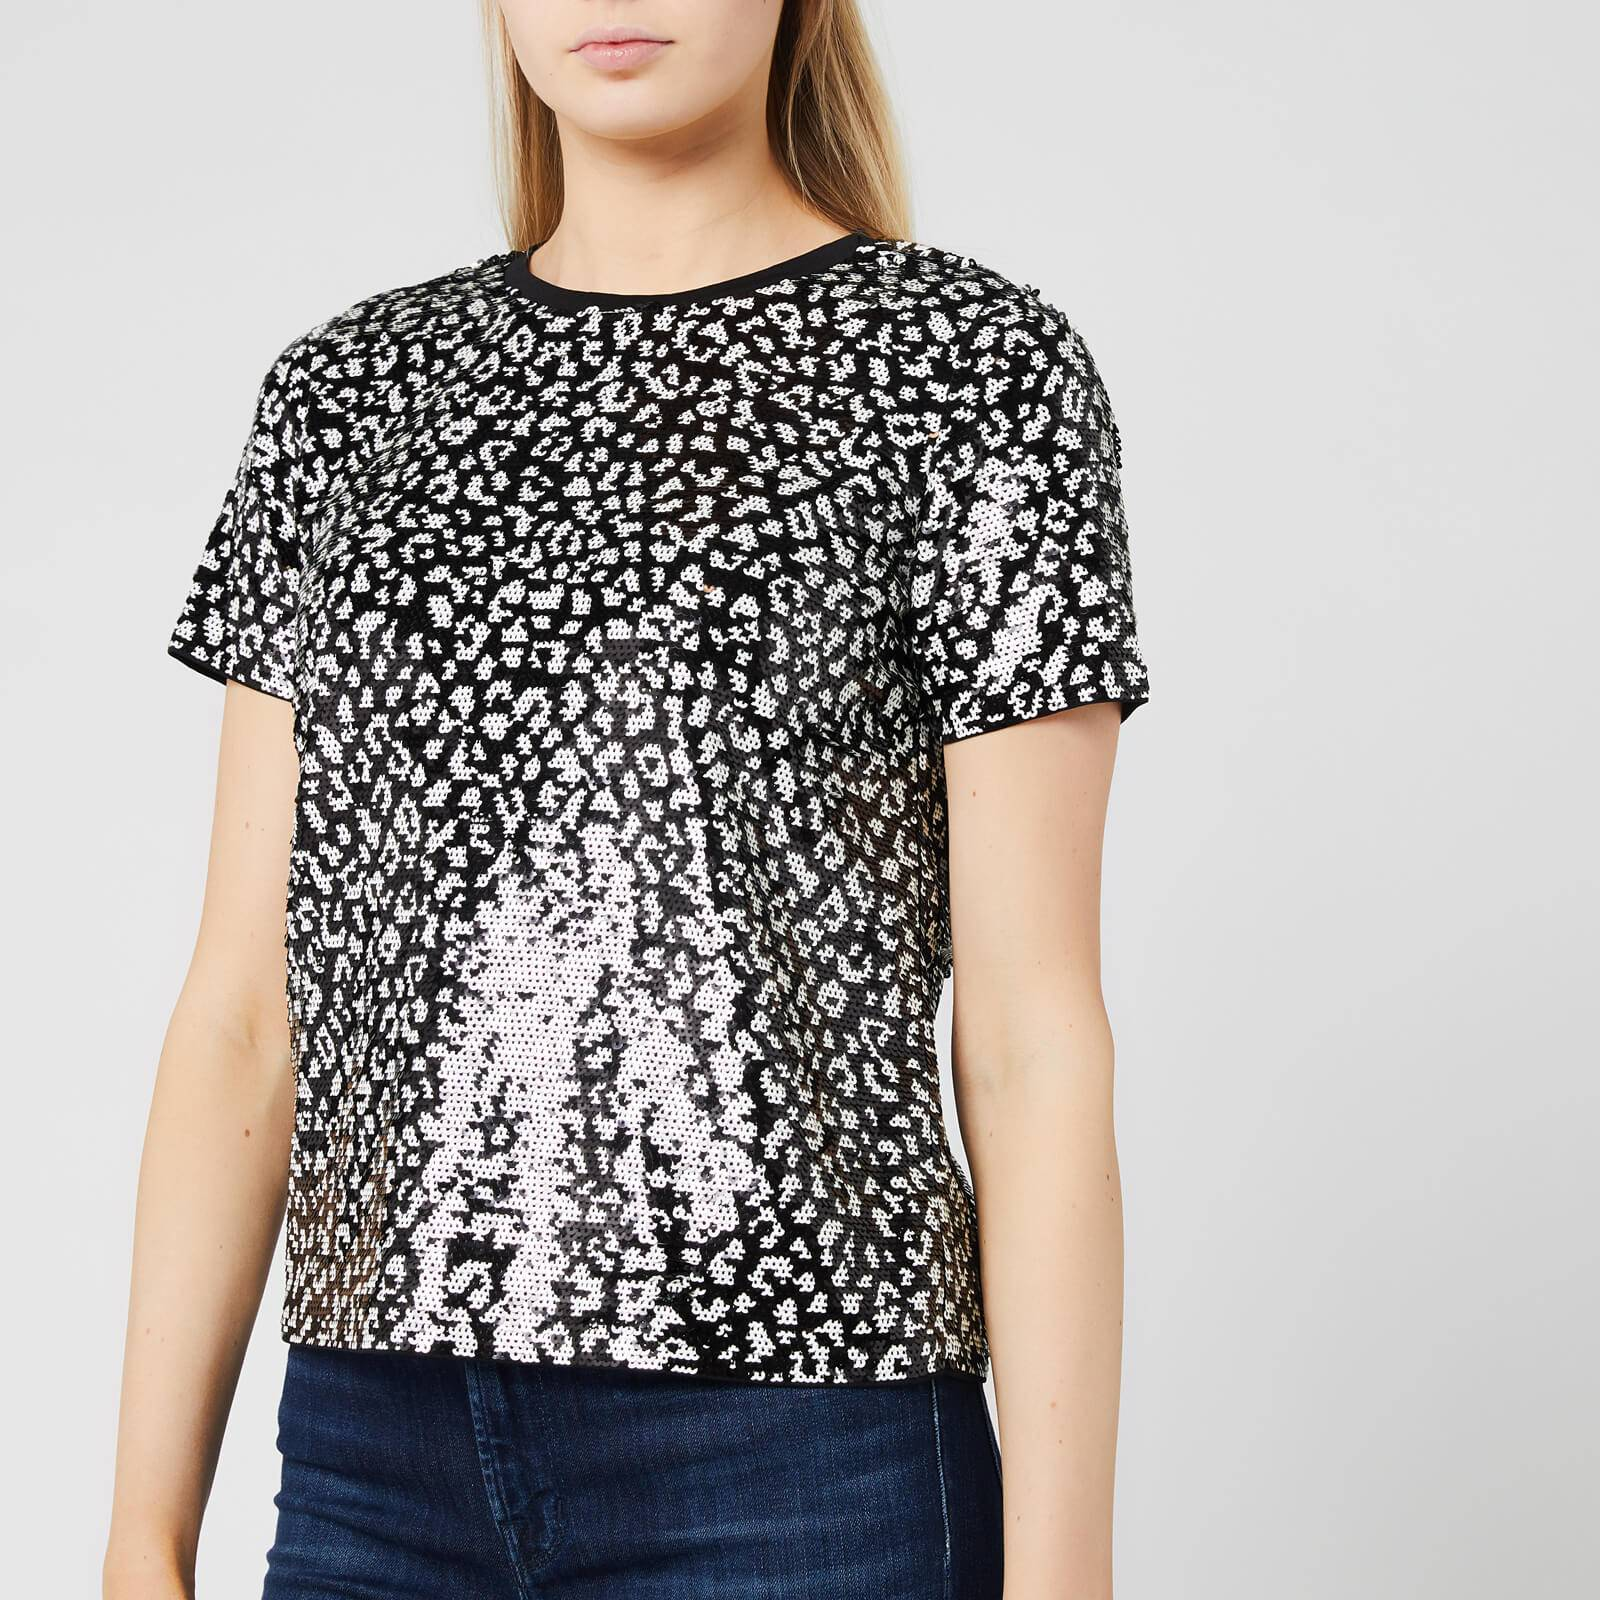 MICHAEL MICHAEL KORS Women's Lux Cat Sequin Baby T-Shirt - Black/Bone - S